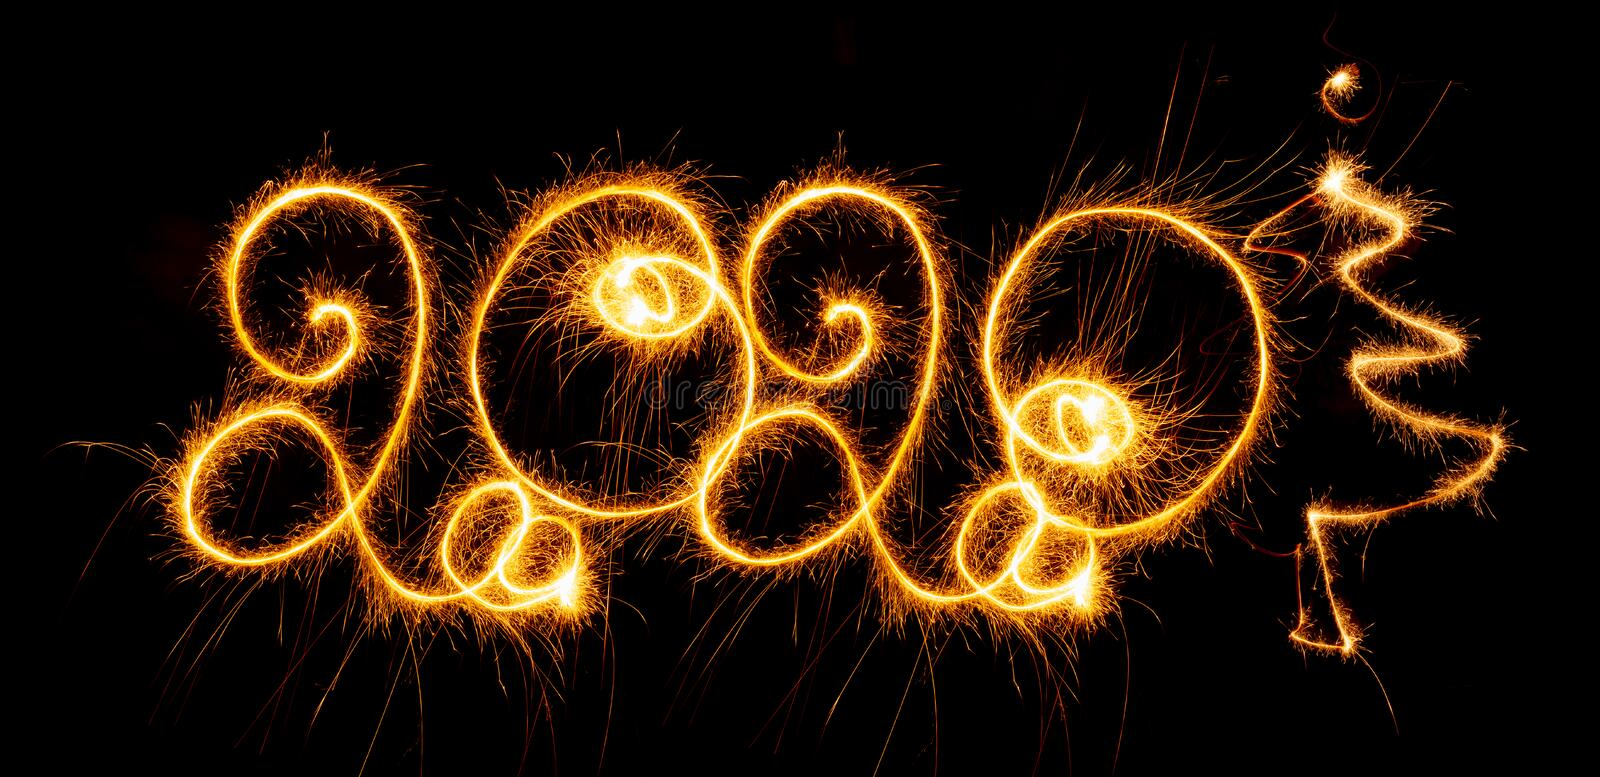 Happy New Year - 2020 with sparklers on black background. Happy New Year 2020 with sparklers on black background stock photos